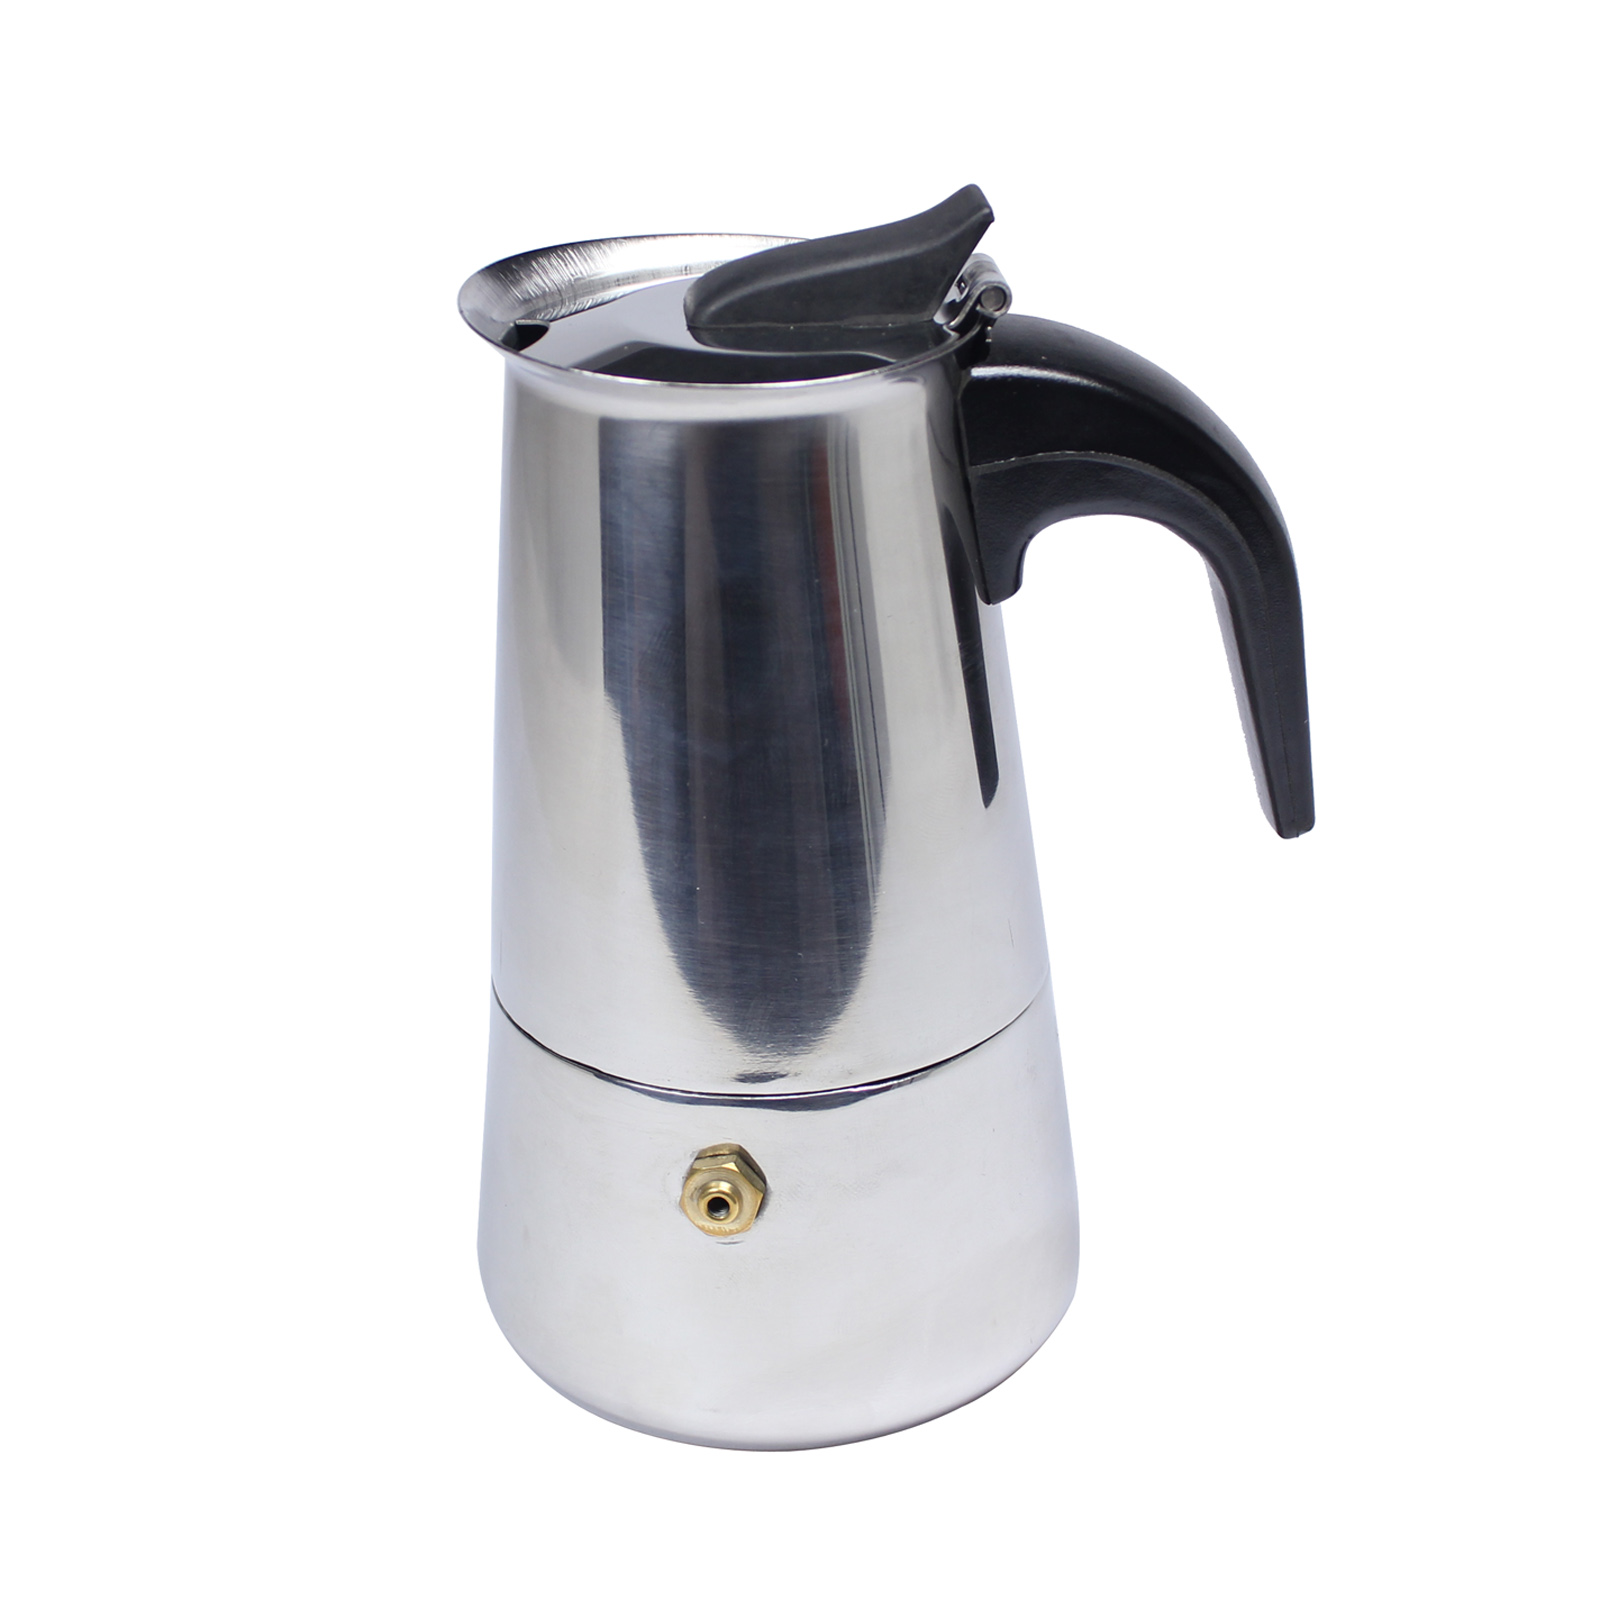 2 cup moka express coffee latte espresso maker pot rubber gasket hj360a ebay